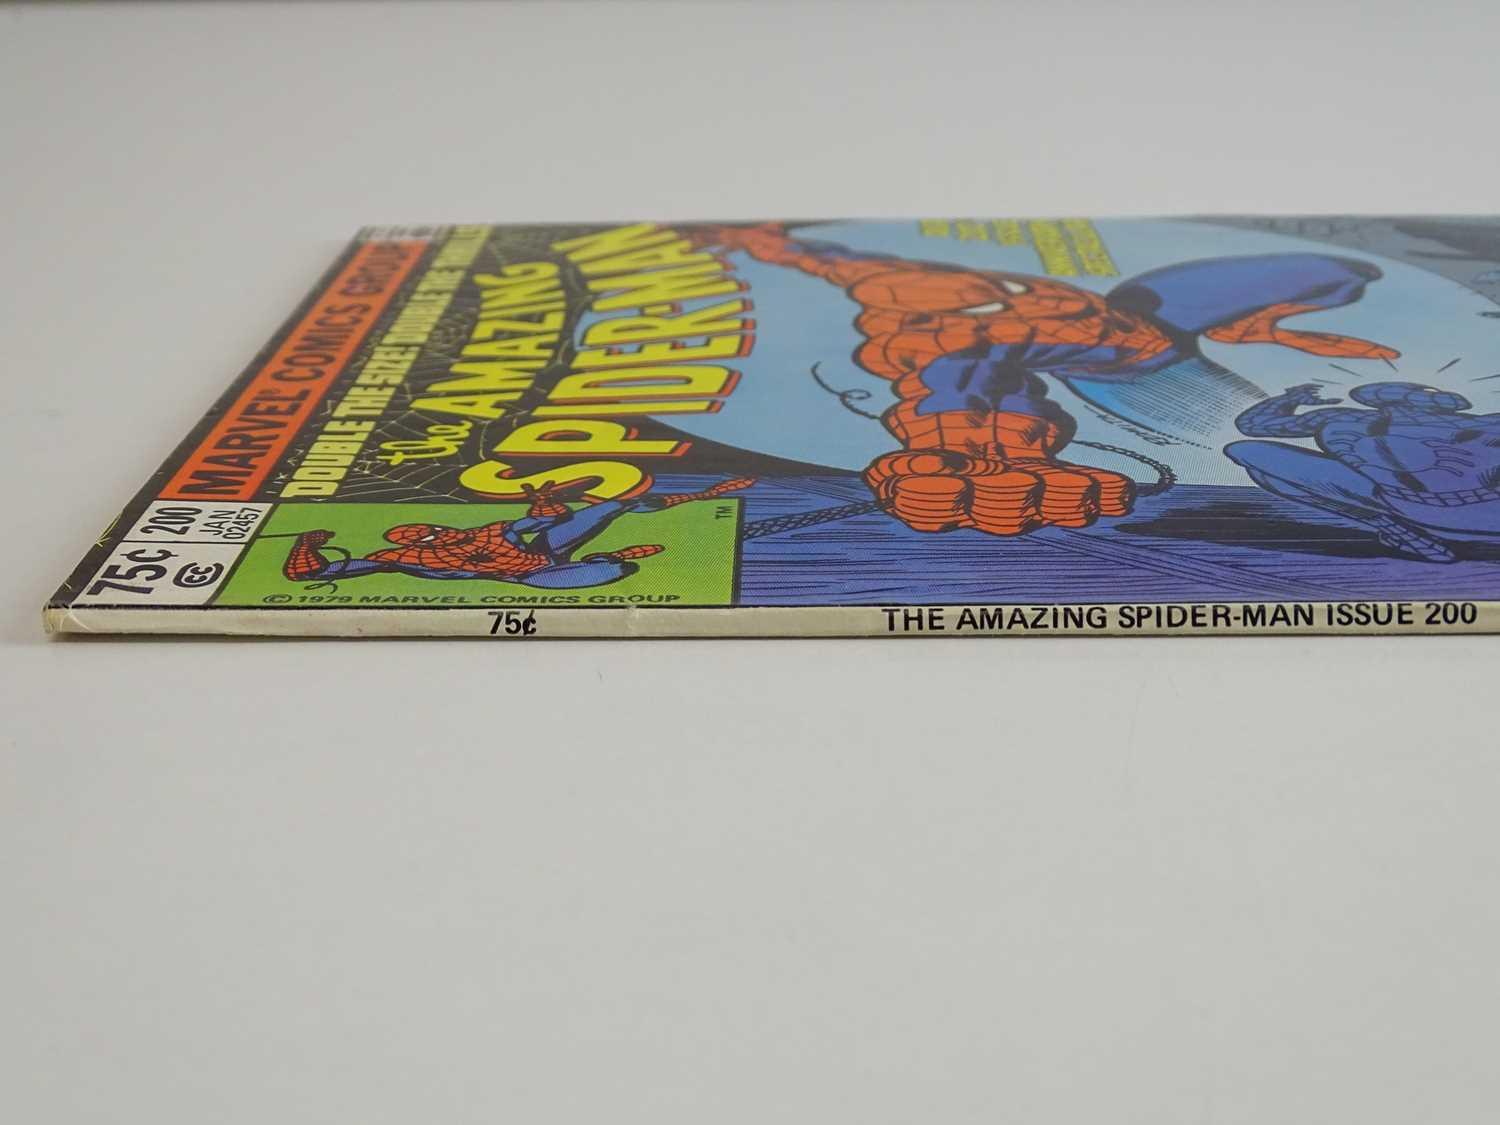 AMAZING SPIDER-MAN #200 - (1980 - MARVEL) - Spider-Man's origin is retold and he confronts the - Image 8 of 9